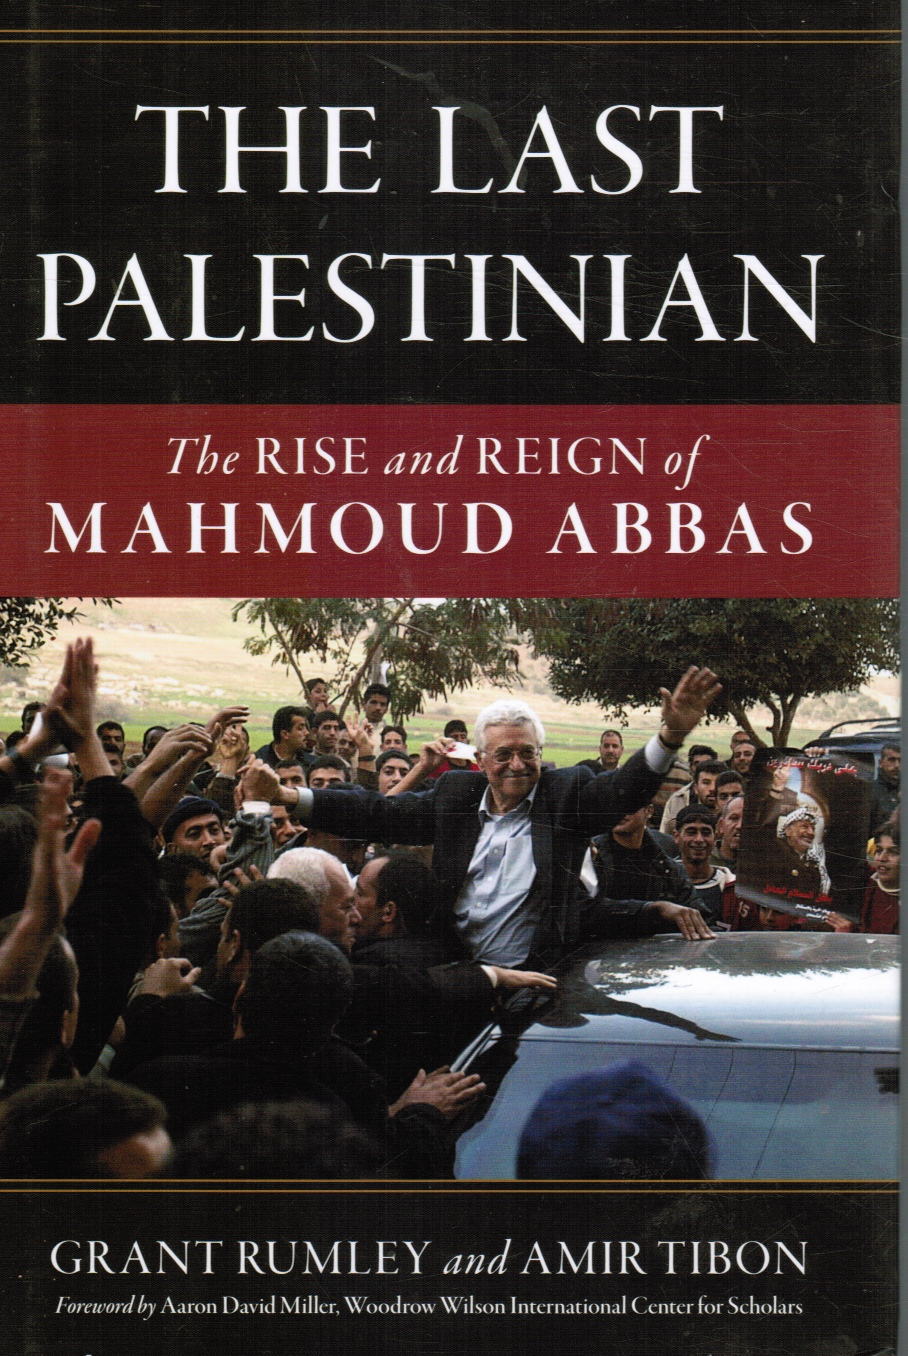 Image for The Last Palestinian: the Rise and Reign of Mahmoud Abbas (SIGNED)